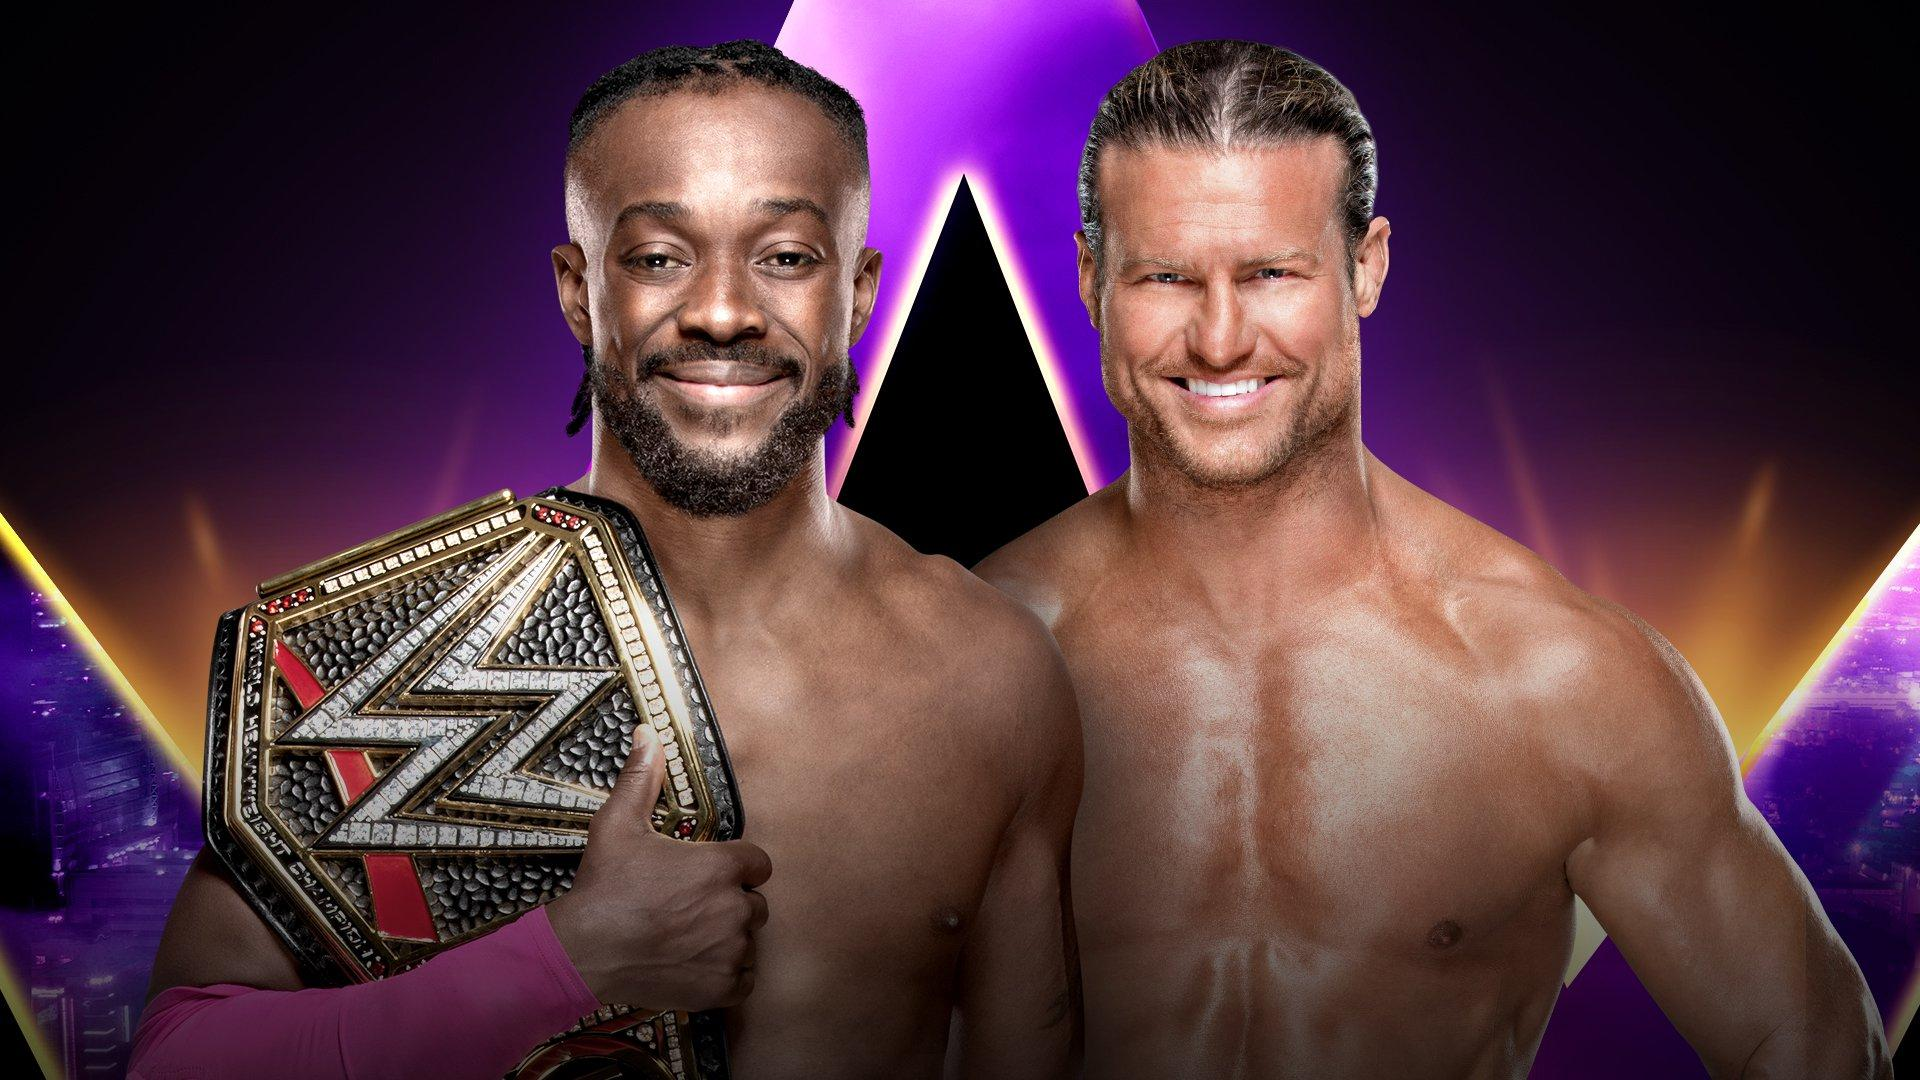 WWE Super ShowDown Kofi Kingston vs Dolph Ziggler